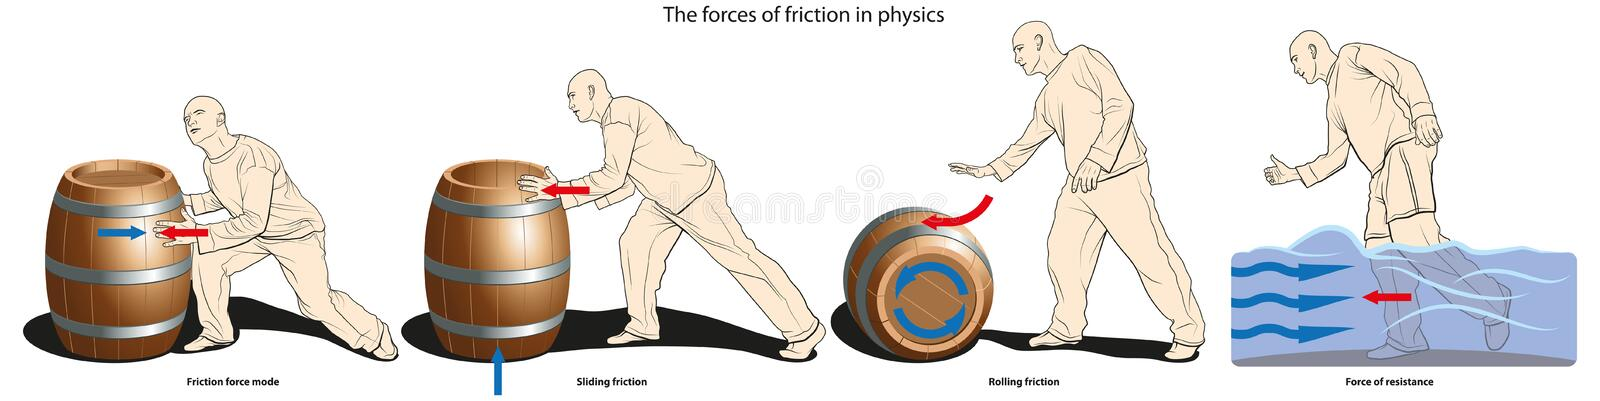 Forces of friction stock illustration